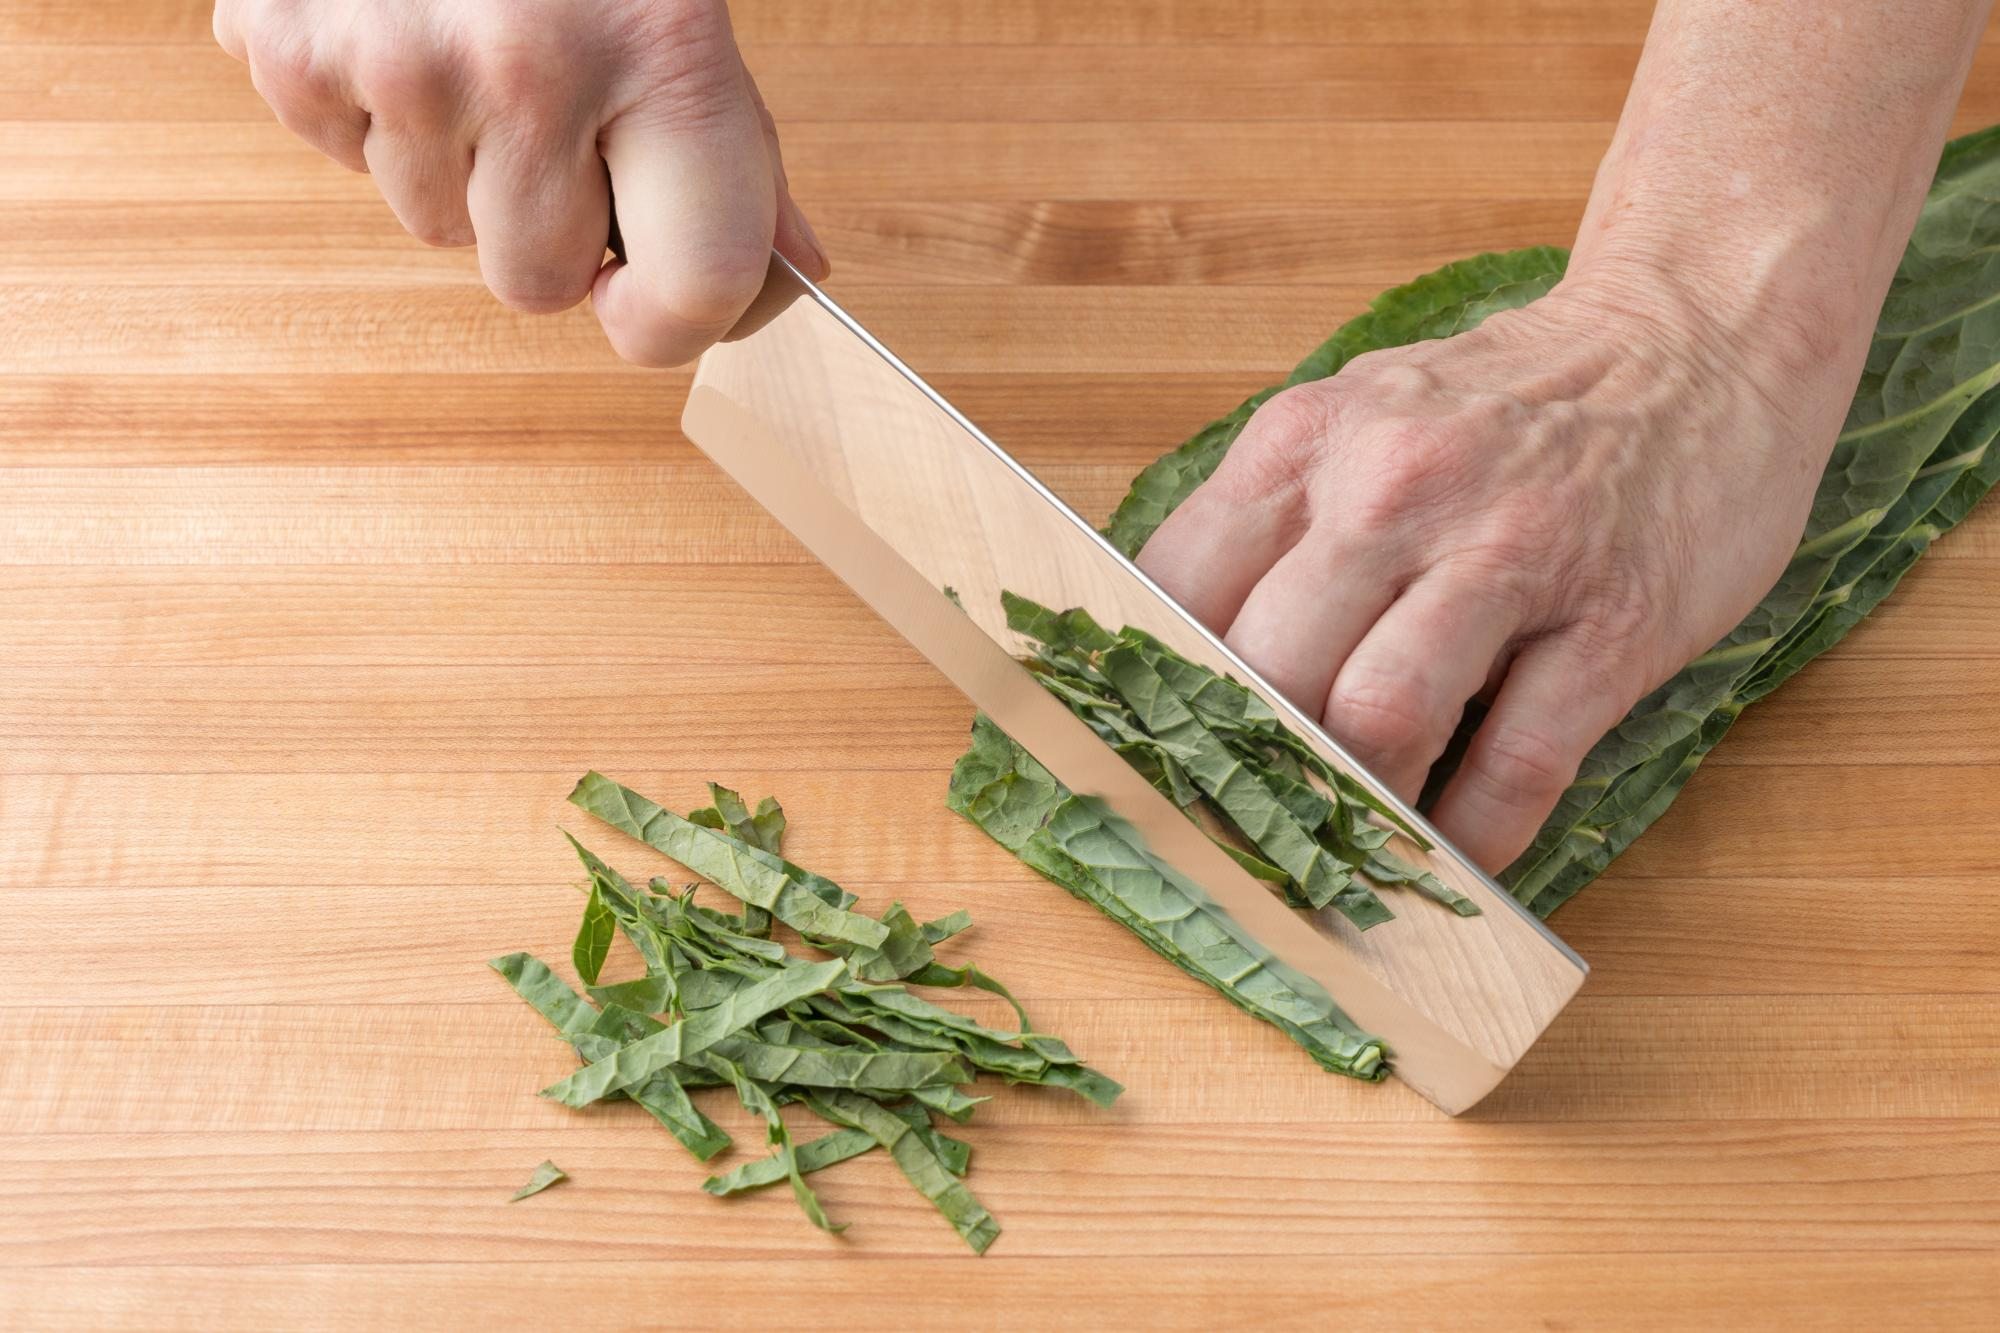 Slicing collard greens with a Vegetable Knife.